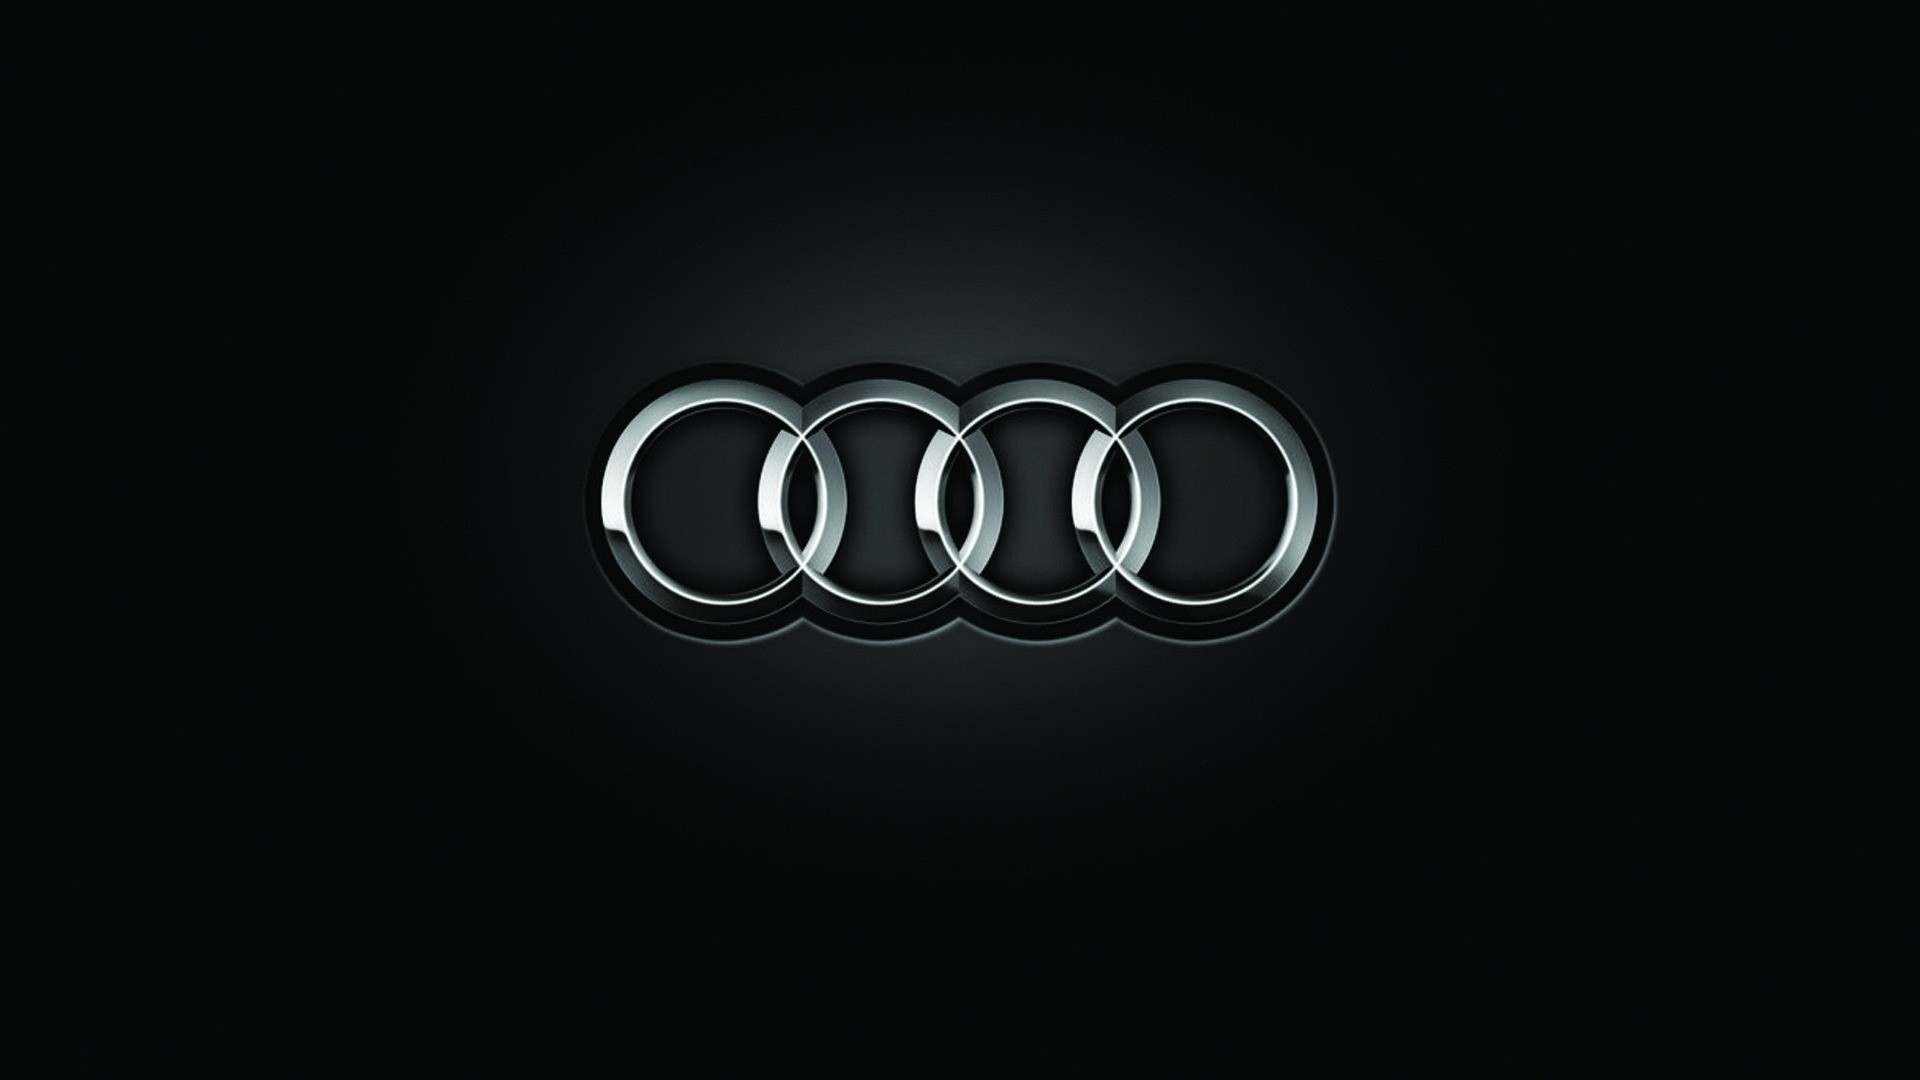 AUDI HD Logo 4k Wallpapers Images Backgrounds Photos